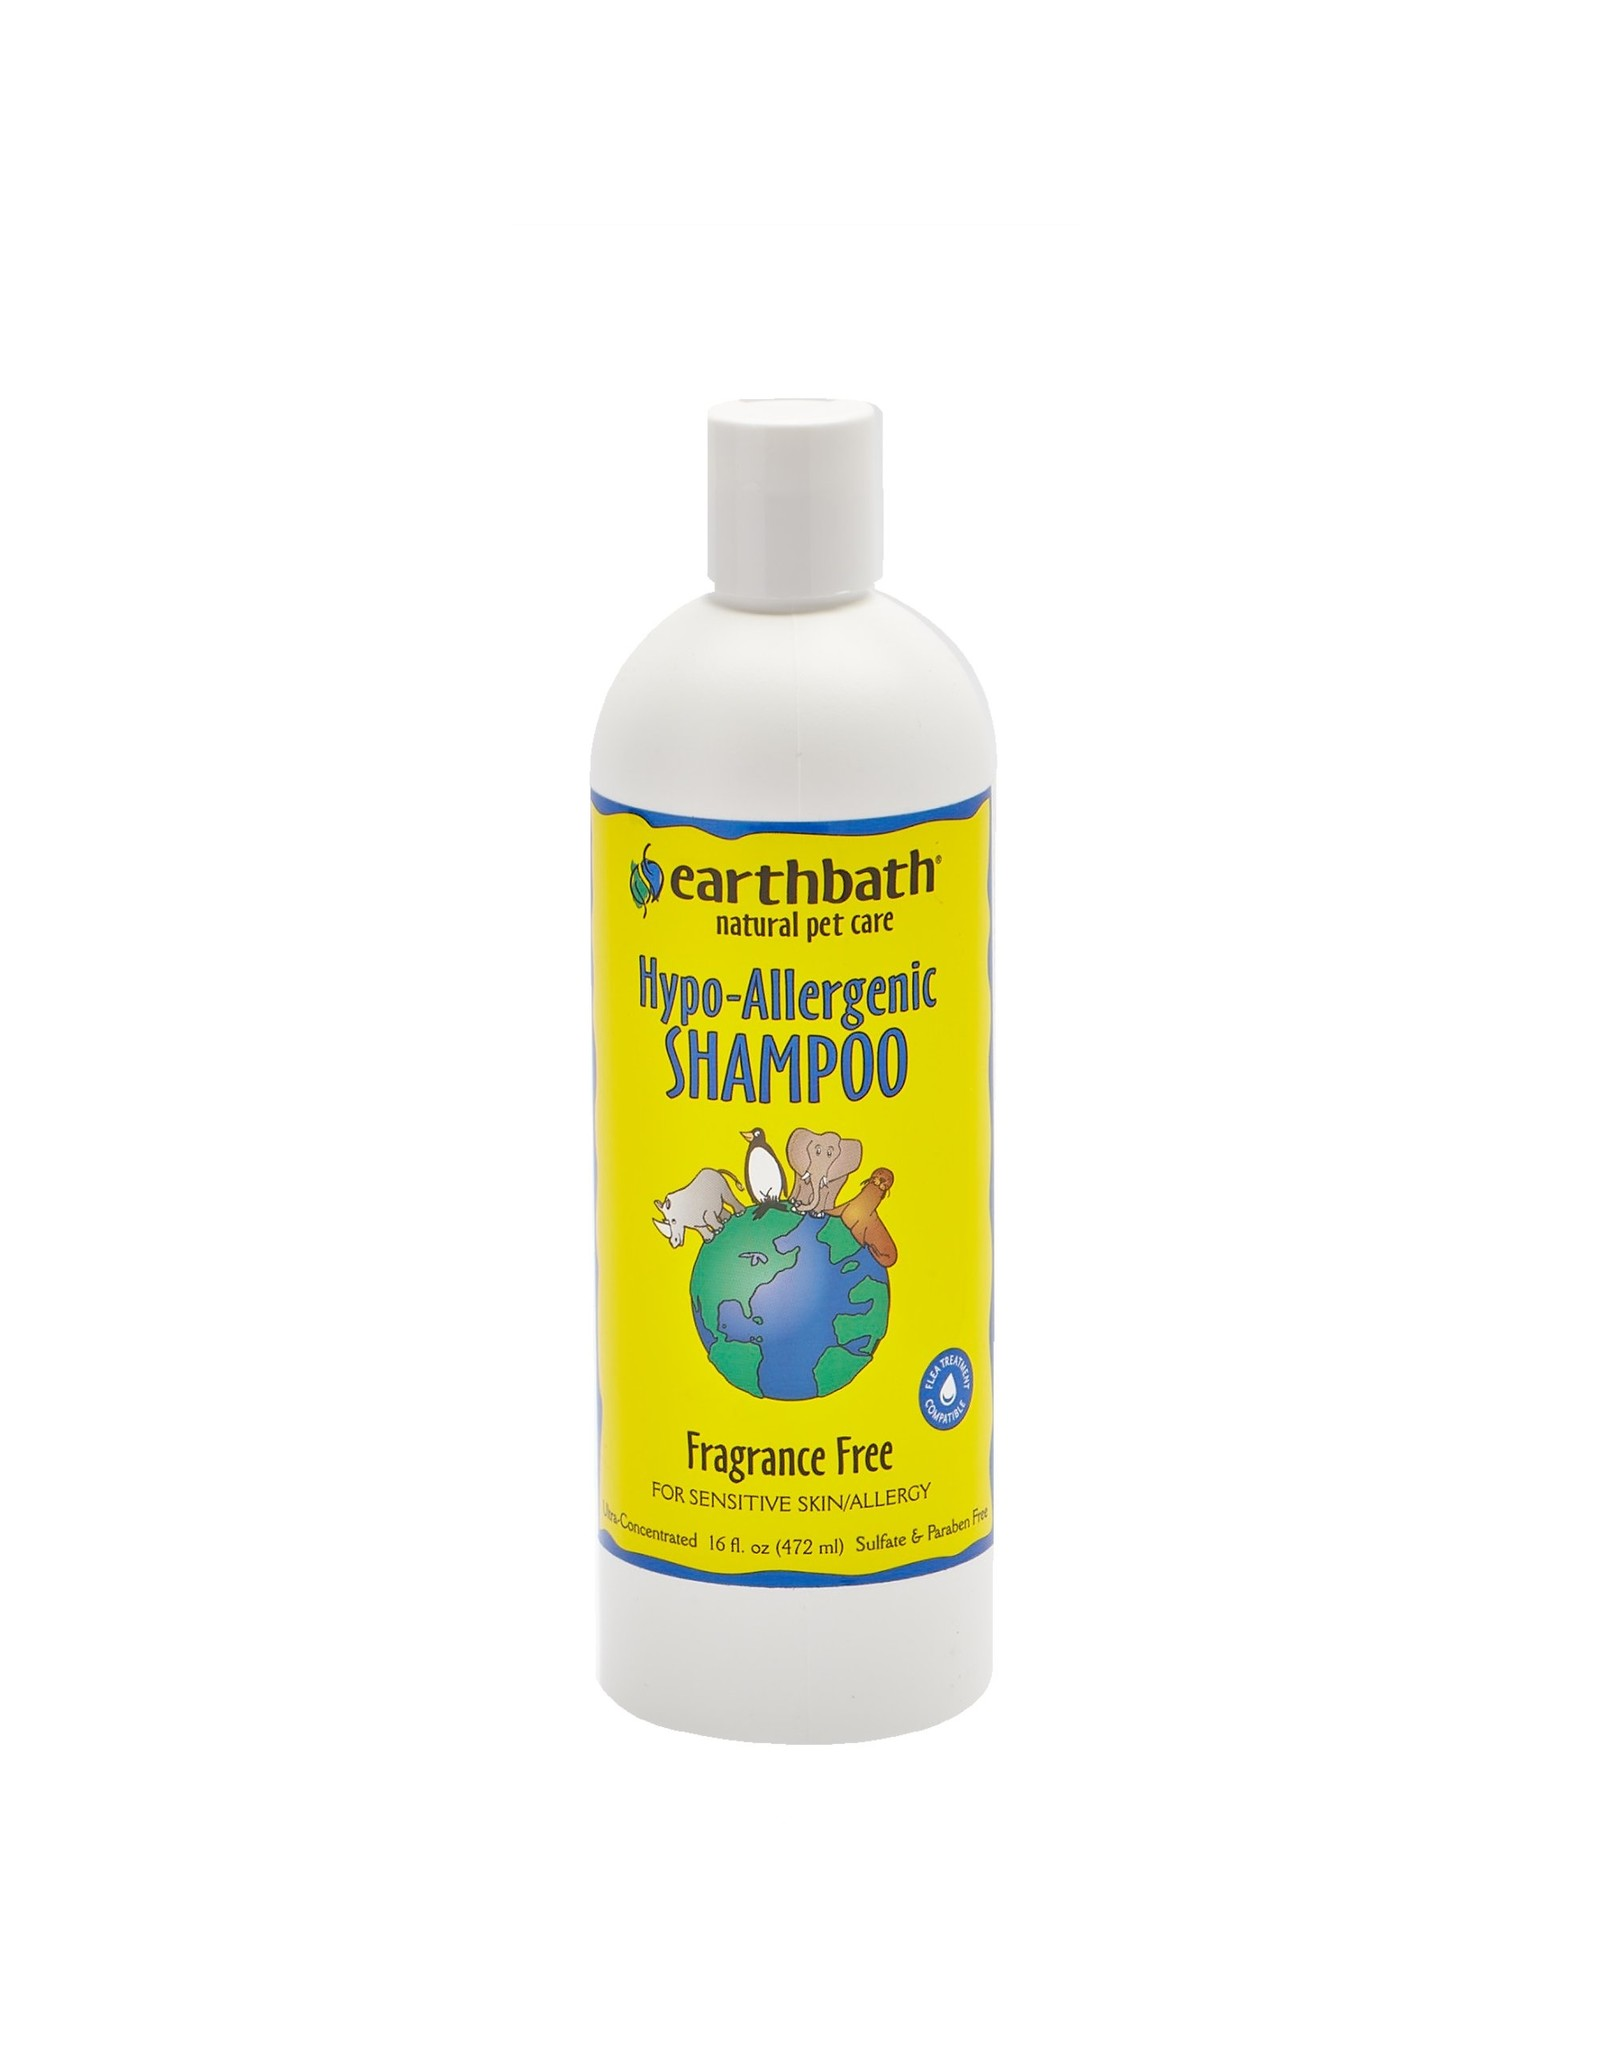 Earthbath Earthbath Hypo-allergenic Shampoo 16oz